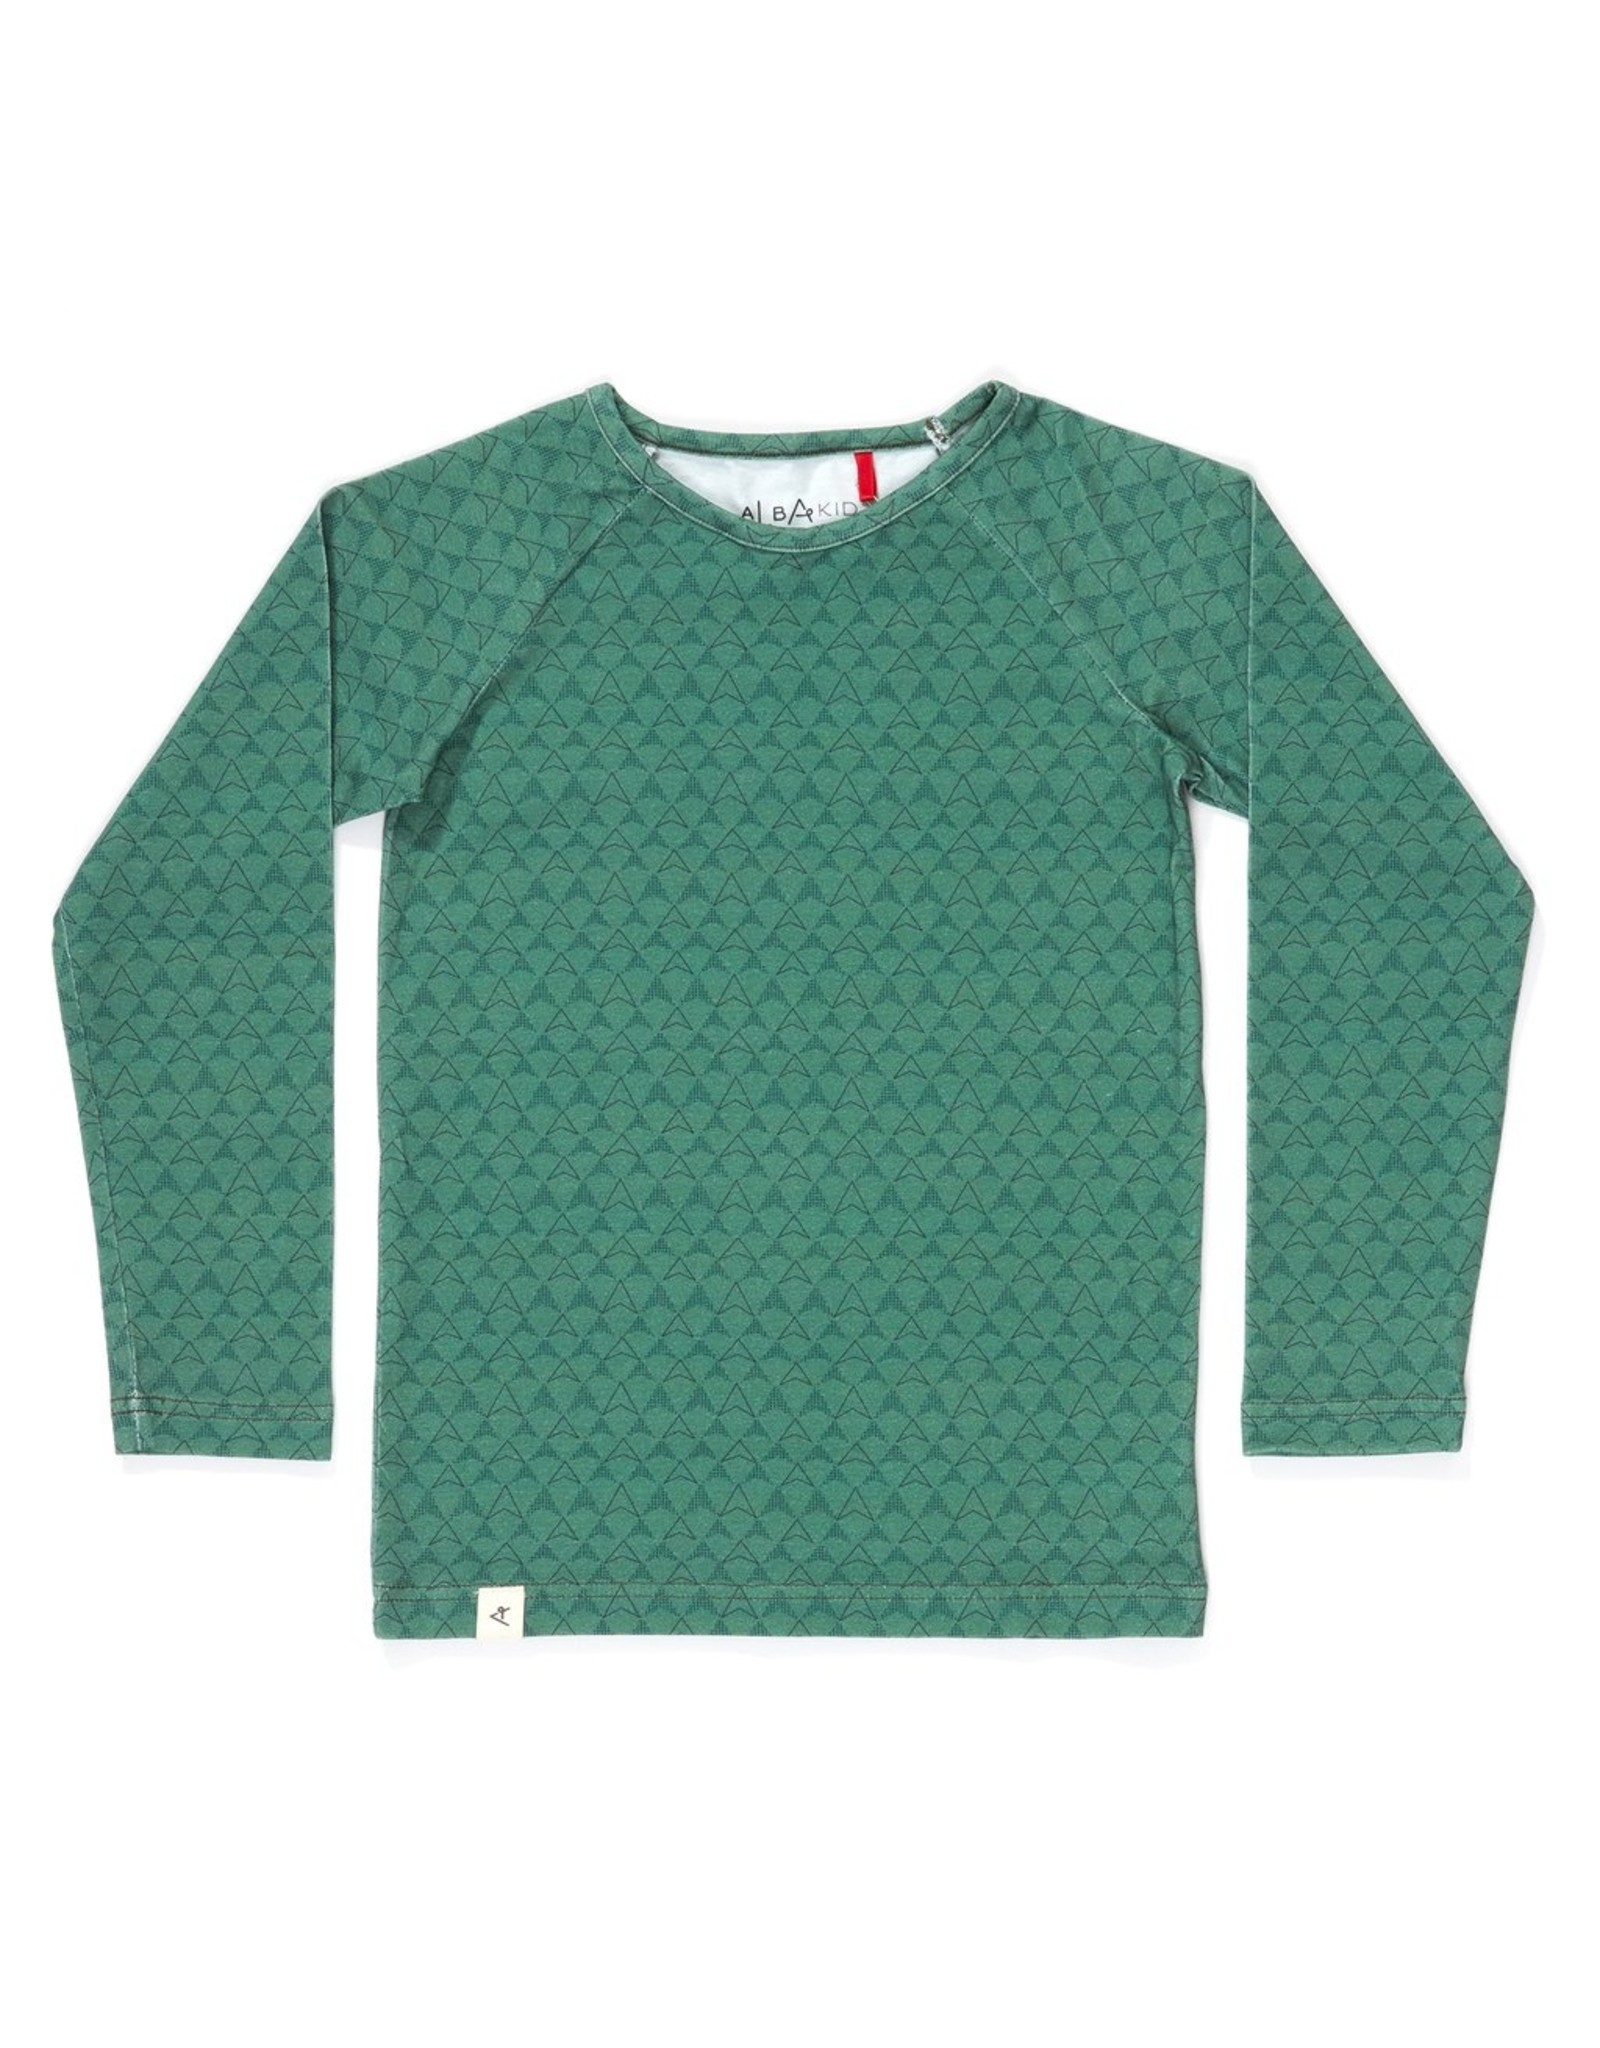 Albababy Alba children's blouse - hannibal blouse green